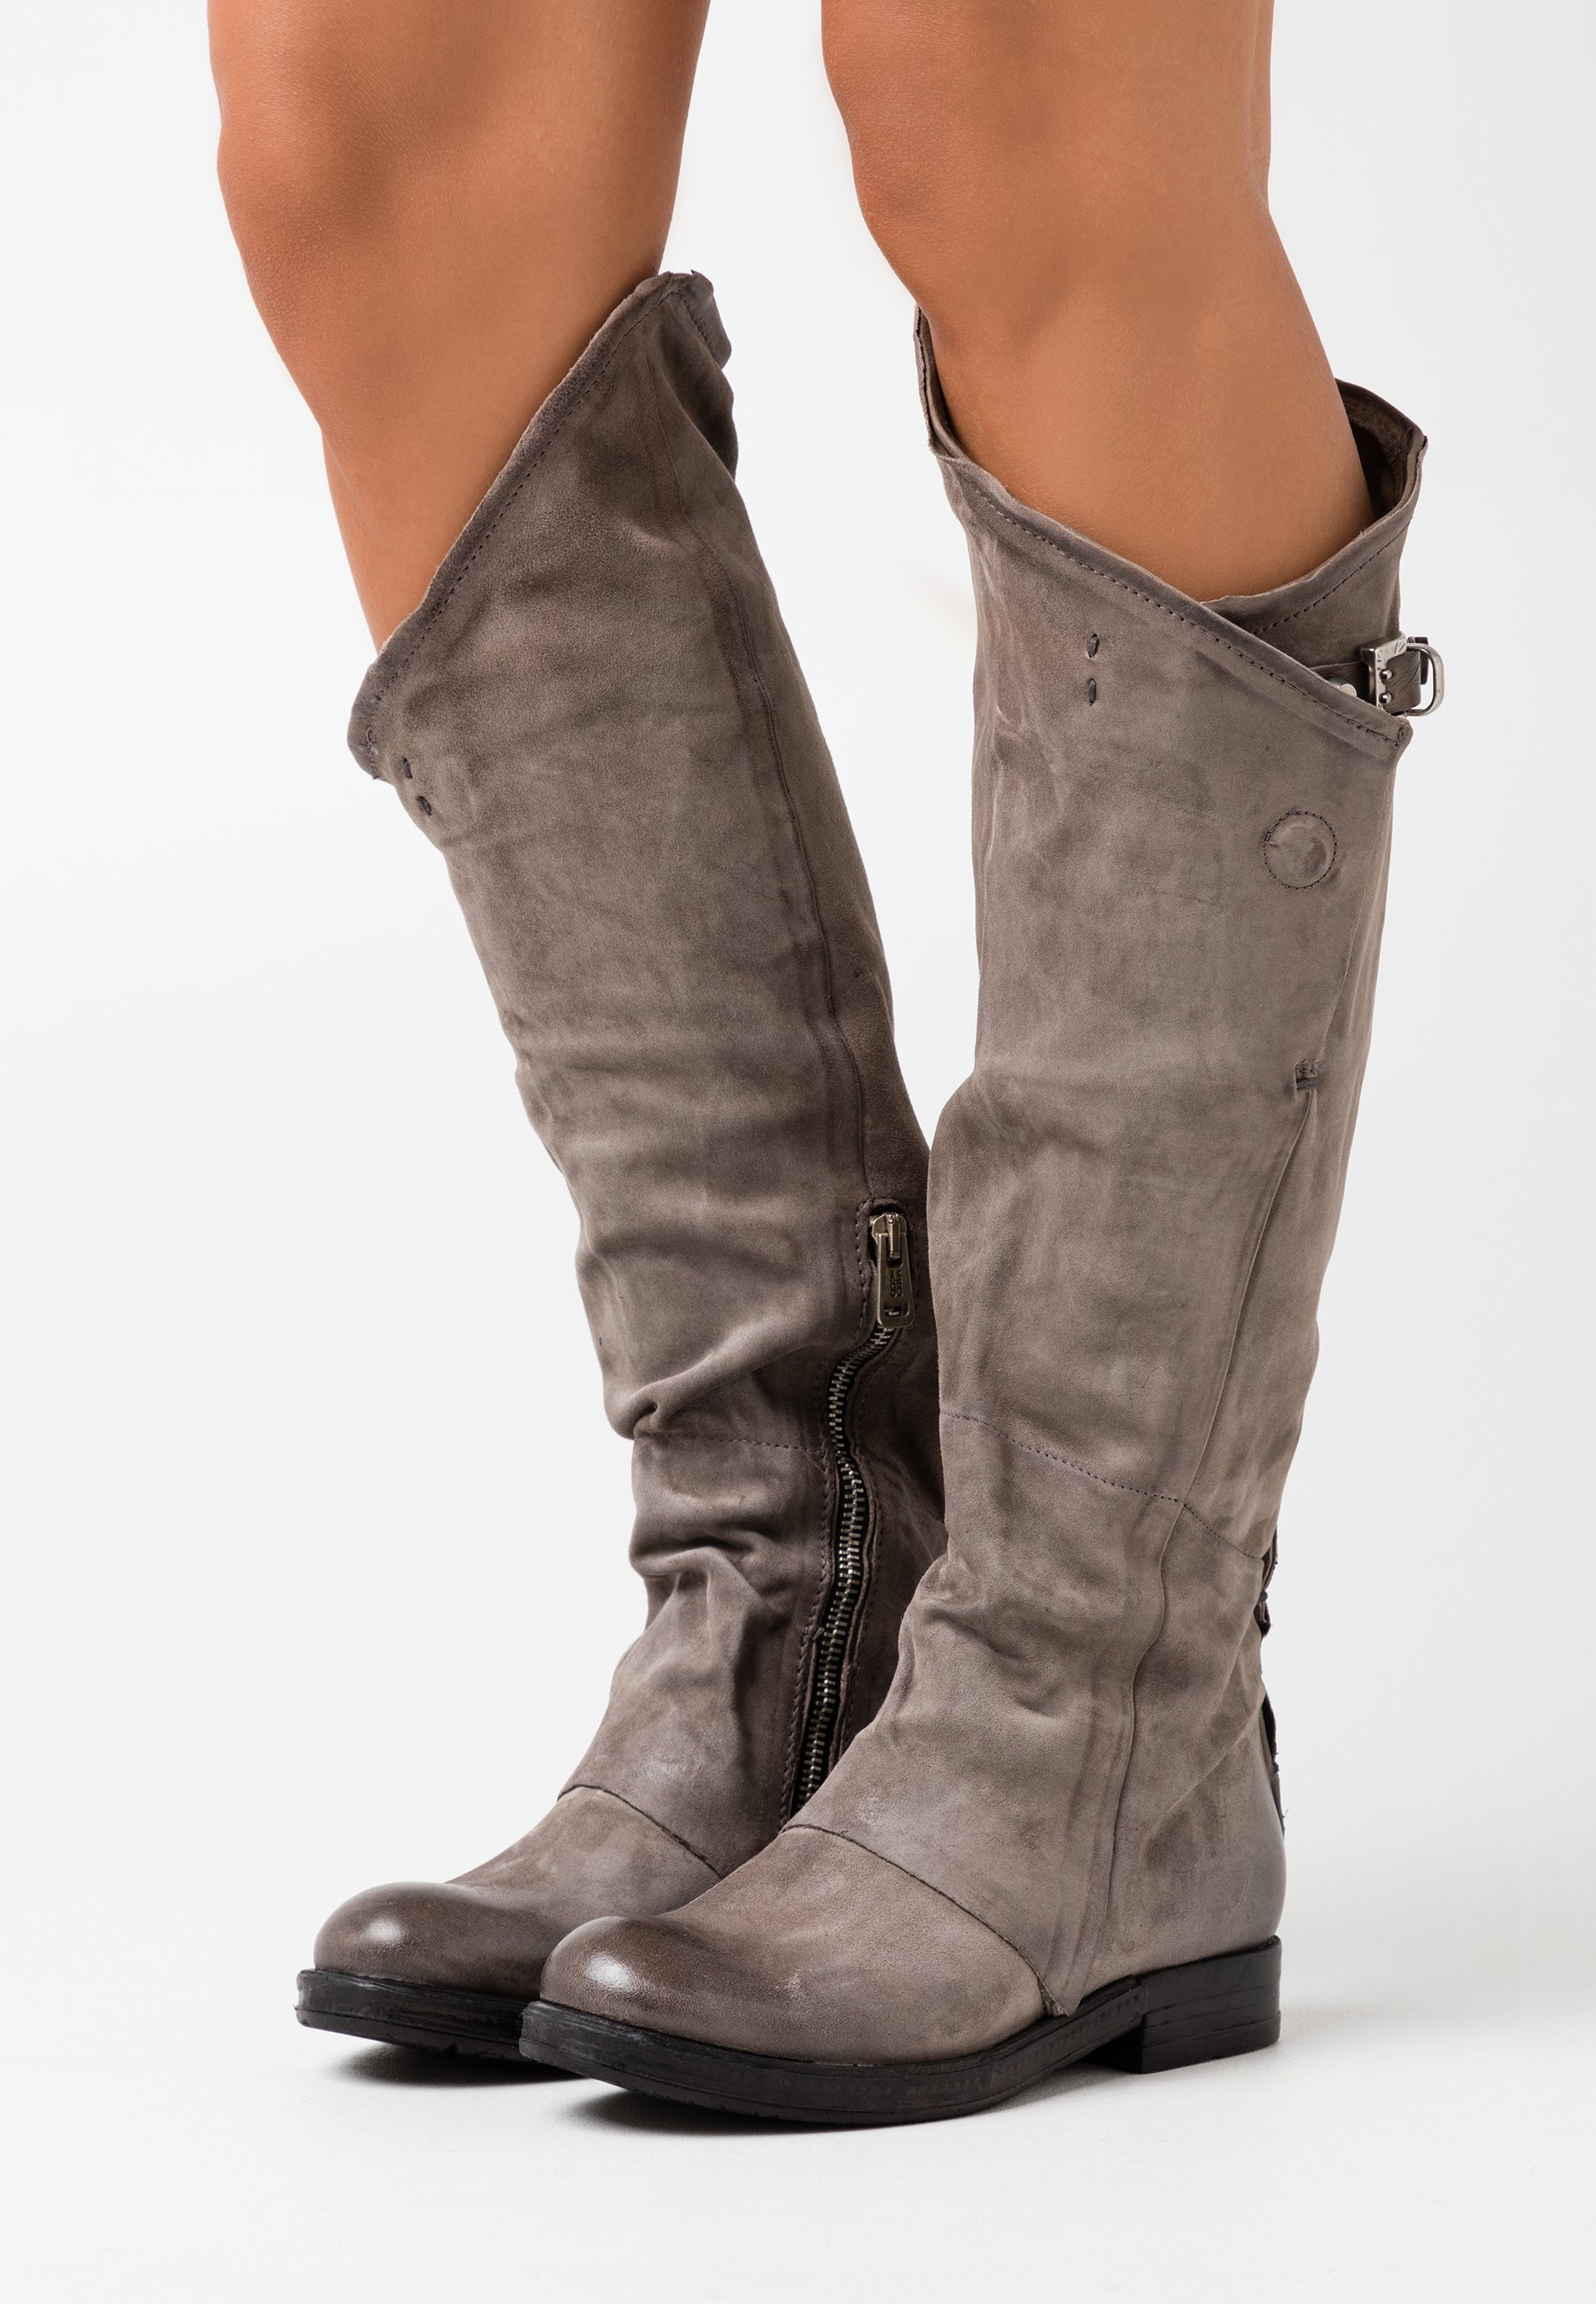 A.s.98 Over-the-knee Boots - Smoke